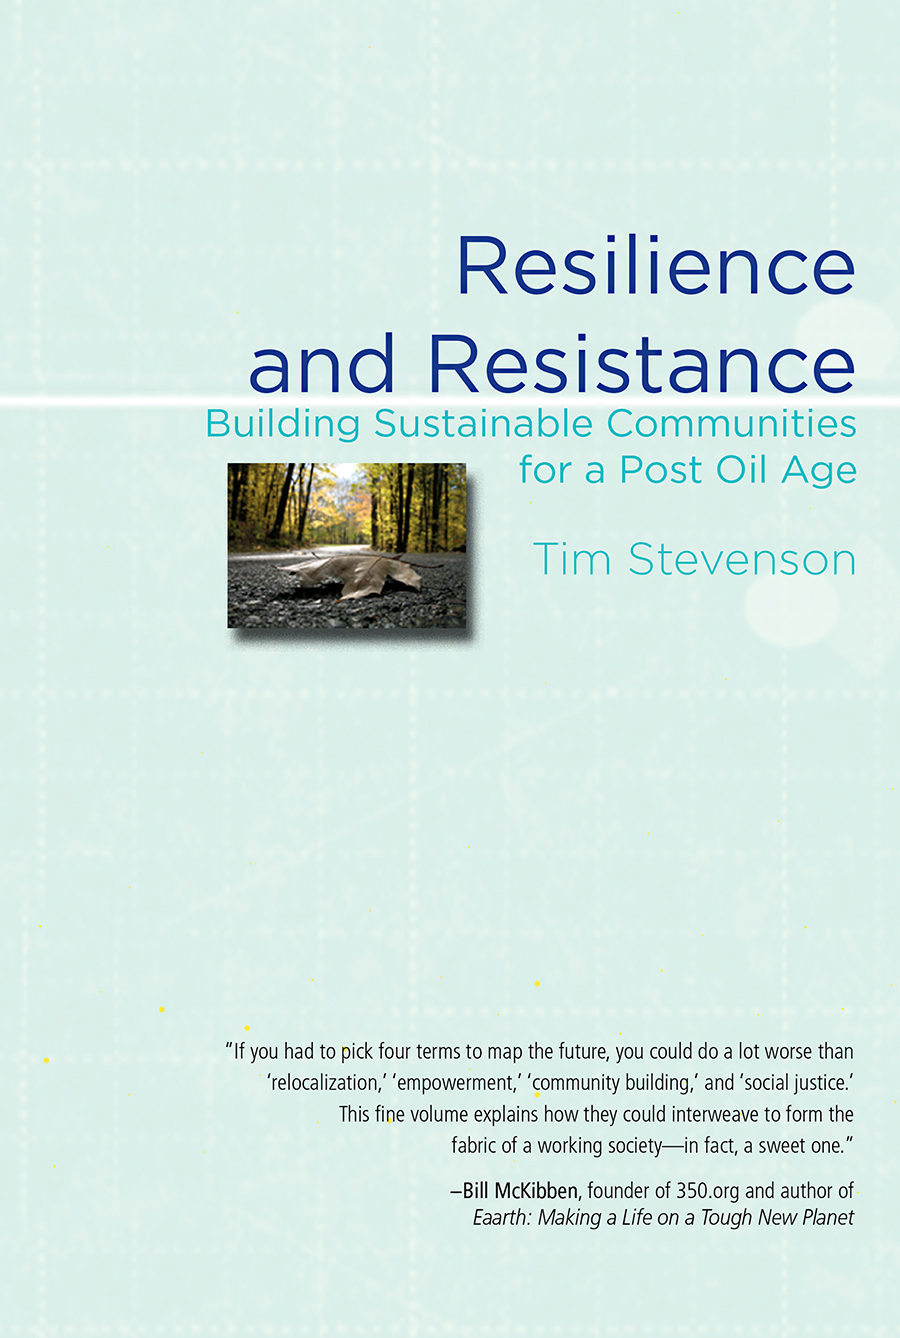 Resilience and Resistance